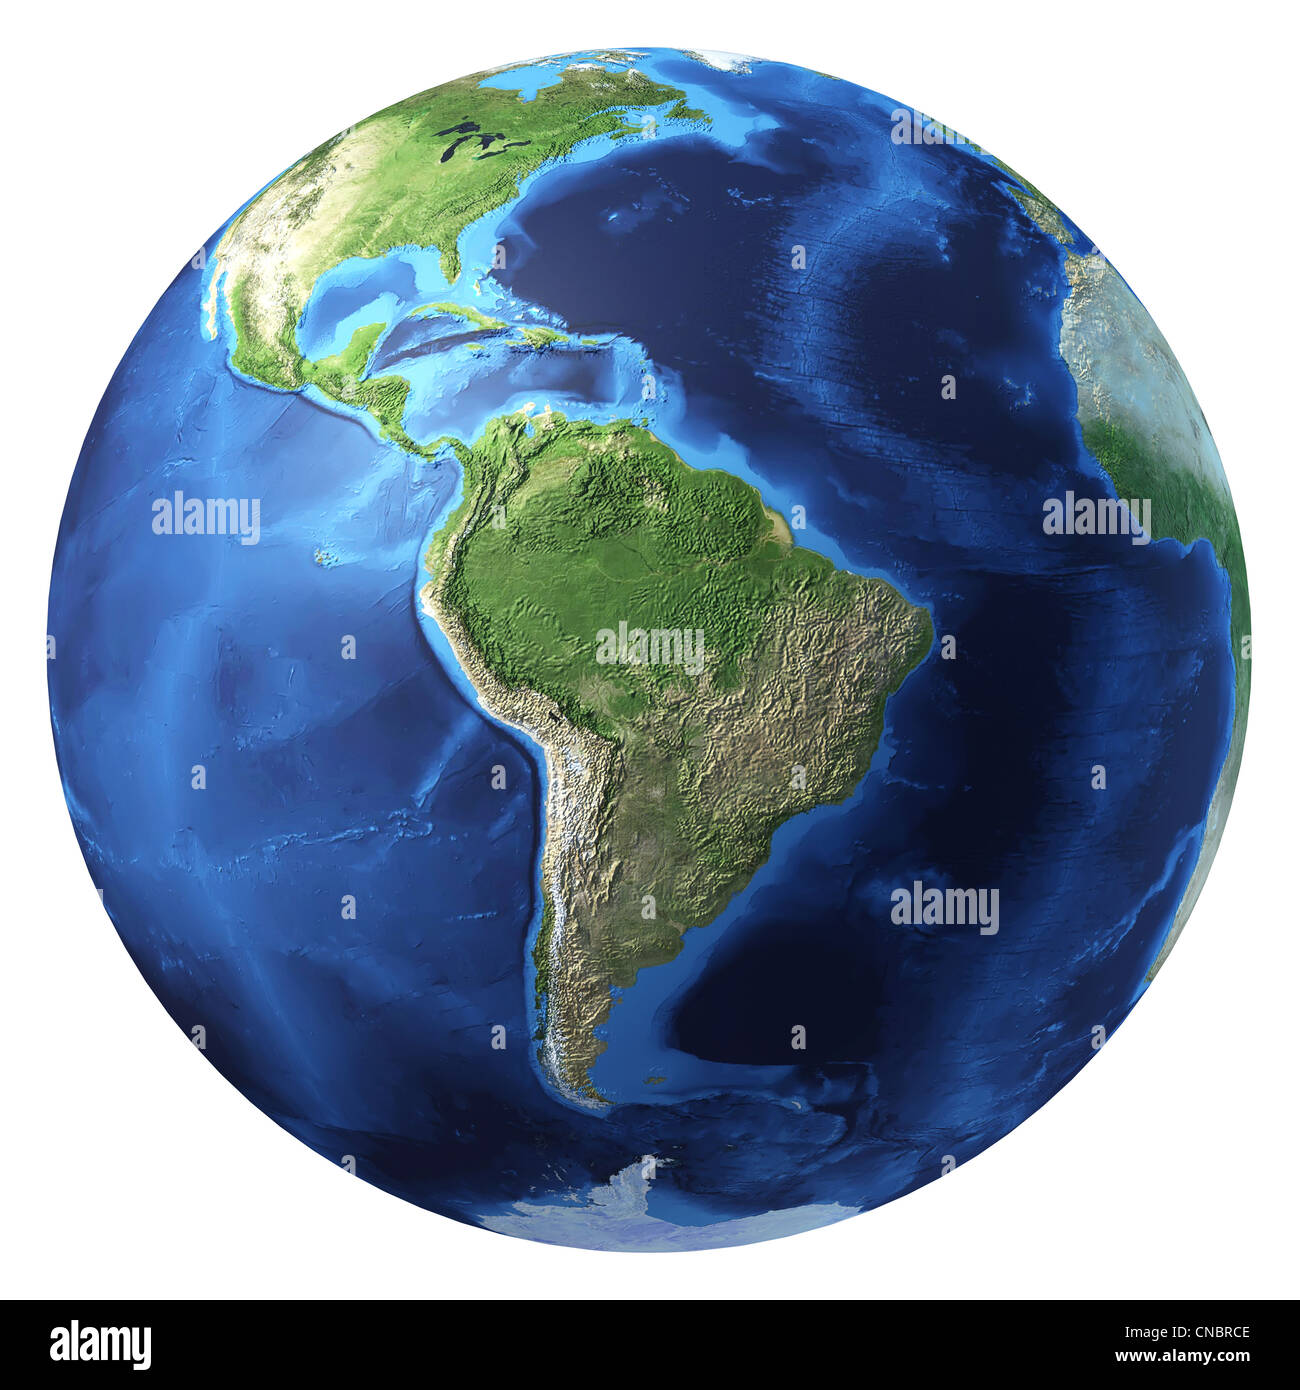 Earth globe, realistic 3 D rendering. South America view. On white background. - Stock Image